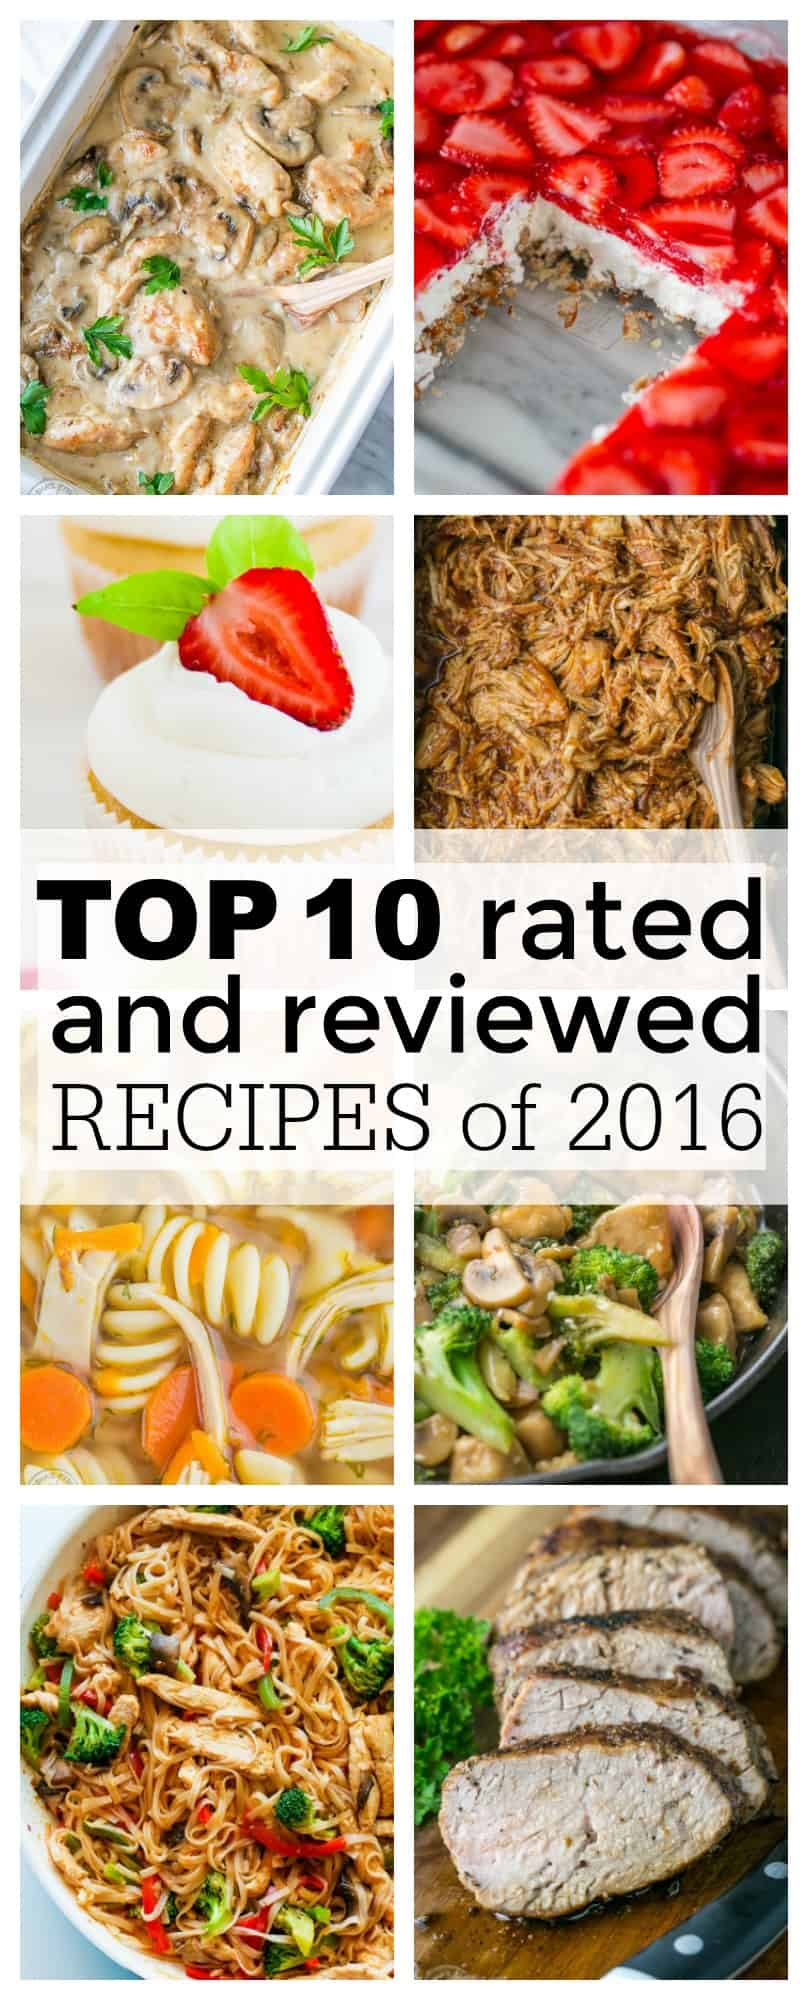 Top 10 Recipes of 2016. Fail proof, best recipes you'll make over and over! That's exactly what this is - most popular, best reviewed, reader favorites! | natashaskitchen.com